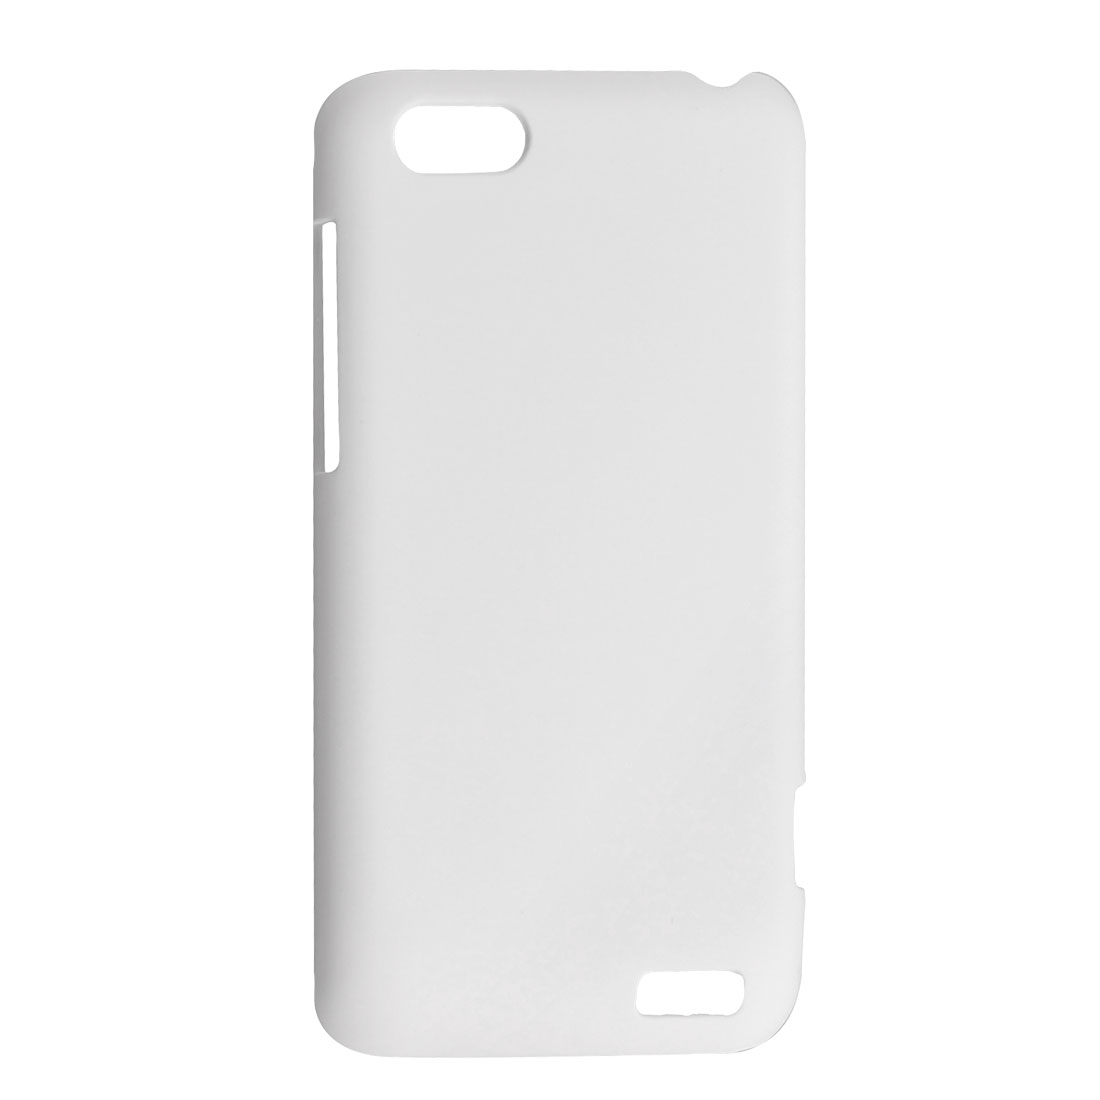 White Rubberized Hard Plastic Back Case Shell for HTC One V